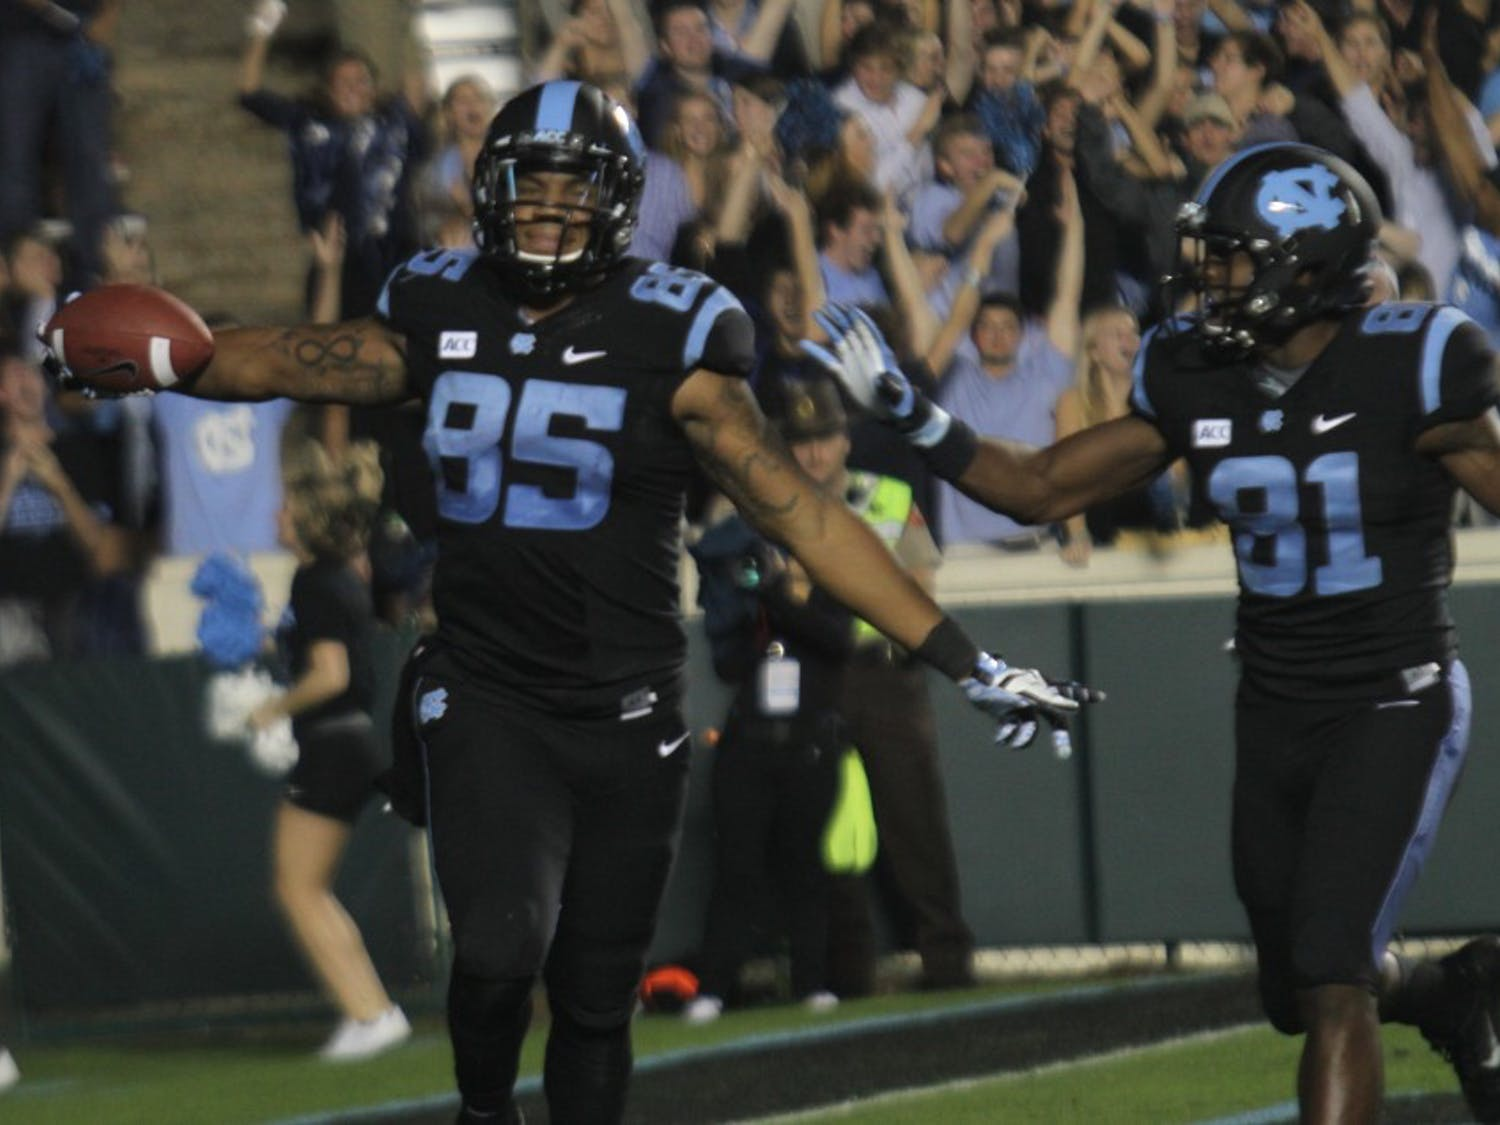 The UNC Tar Heels hosted the Miami Hurricanes at Kenan Stadium in Chapel Hill on Thursday, Oct. 17, 2013.